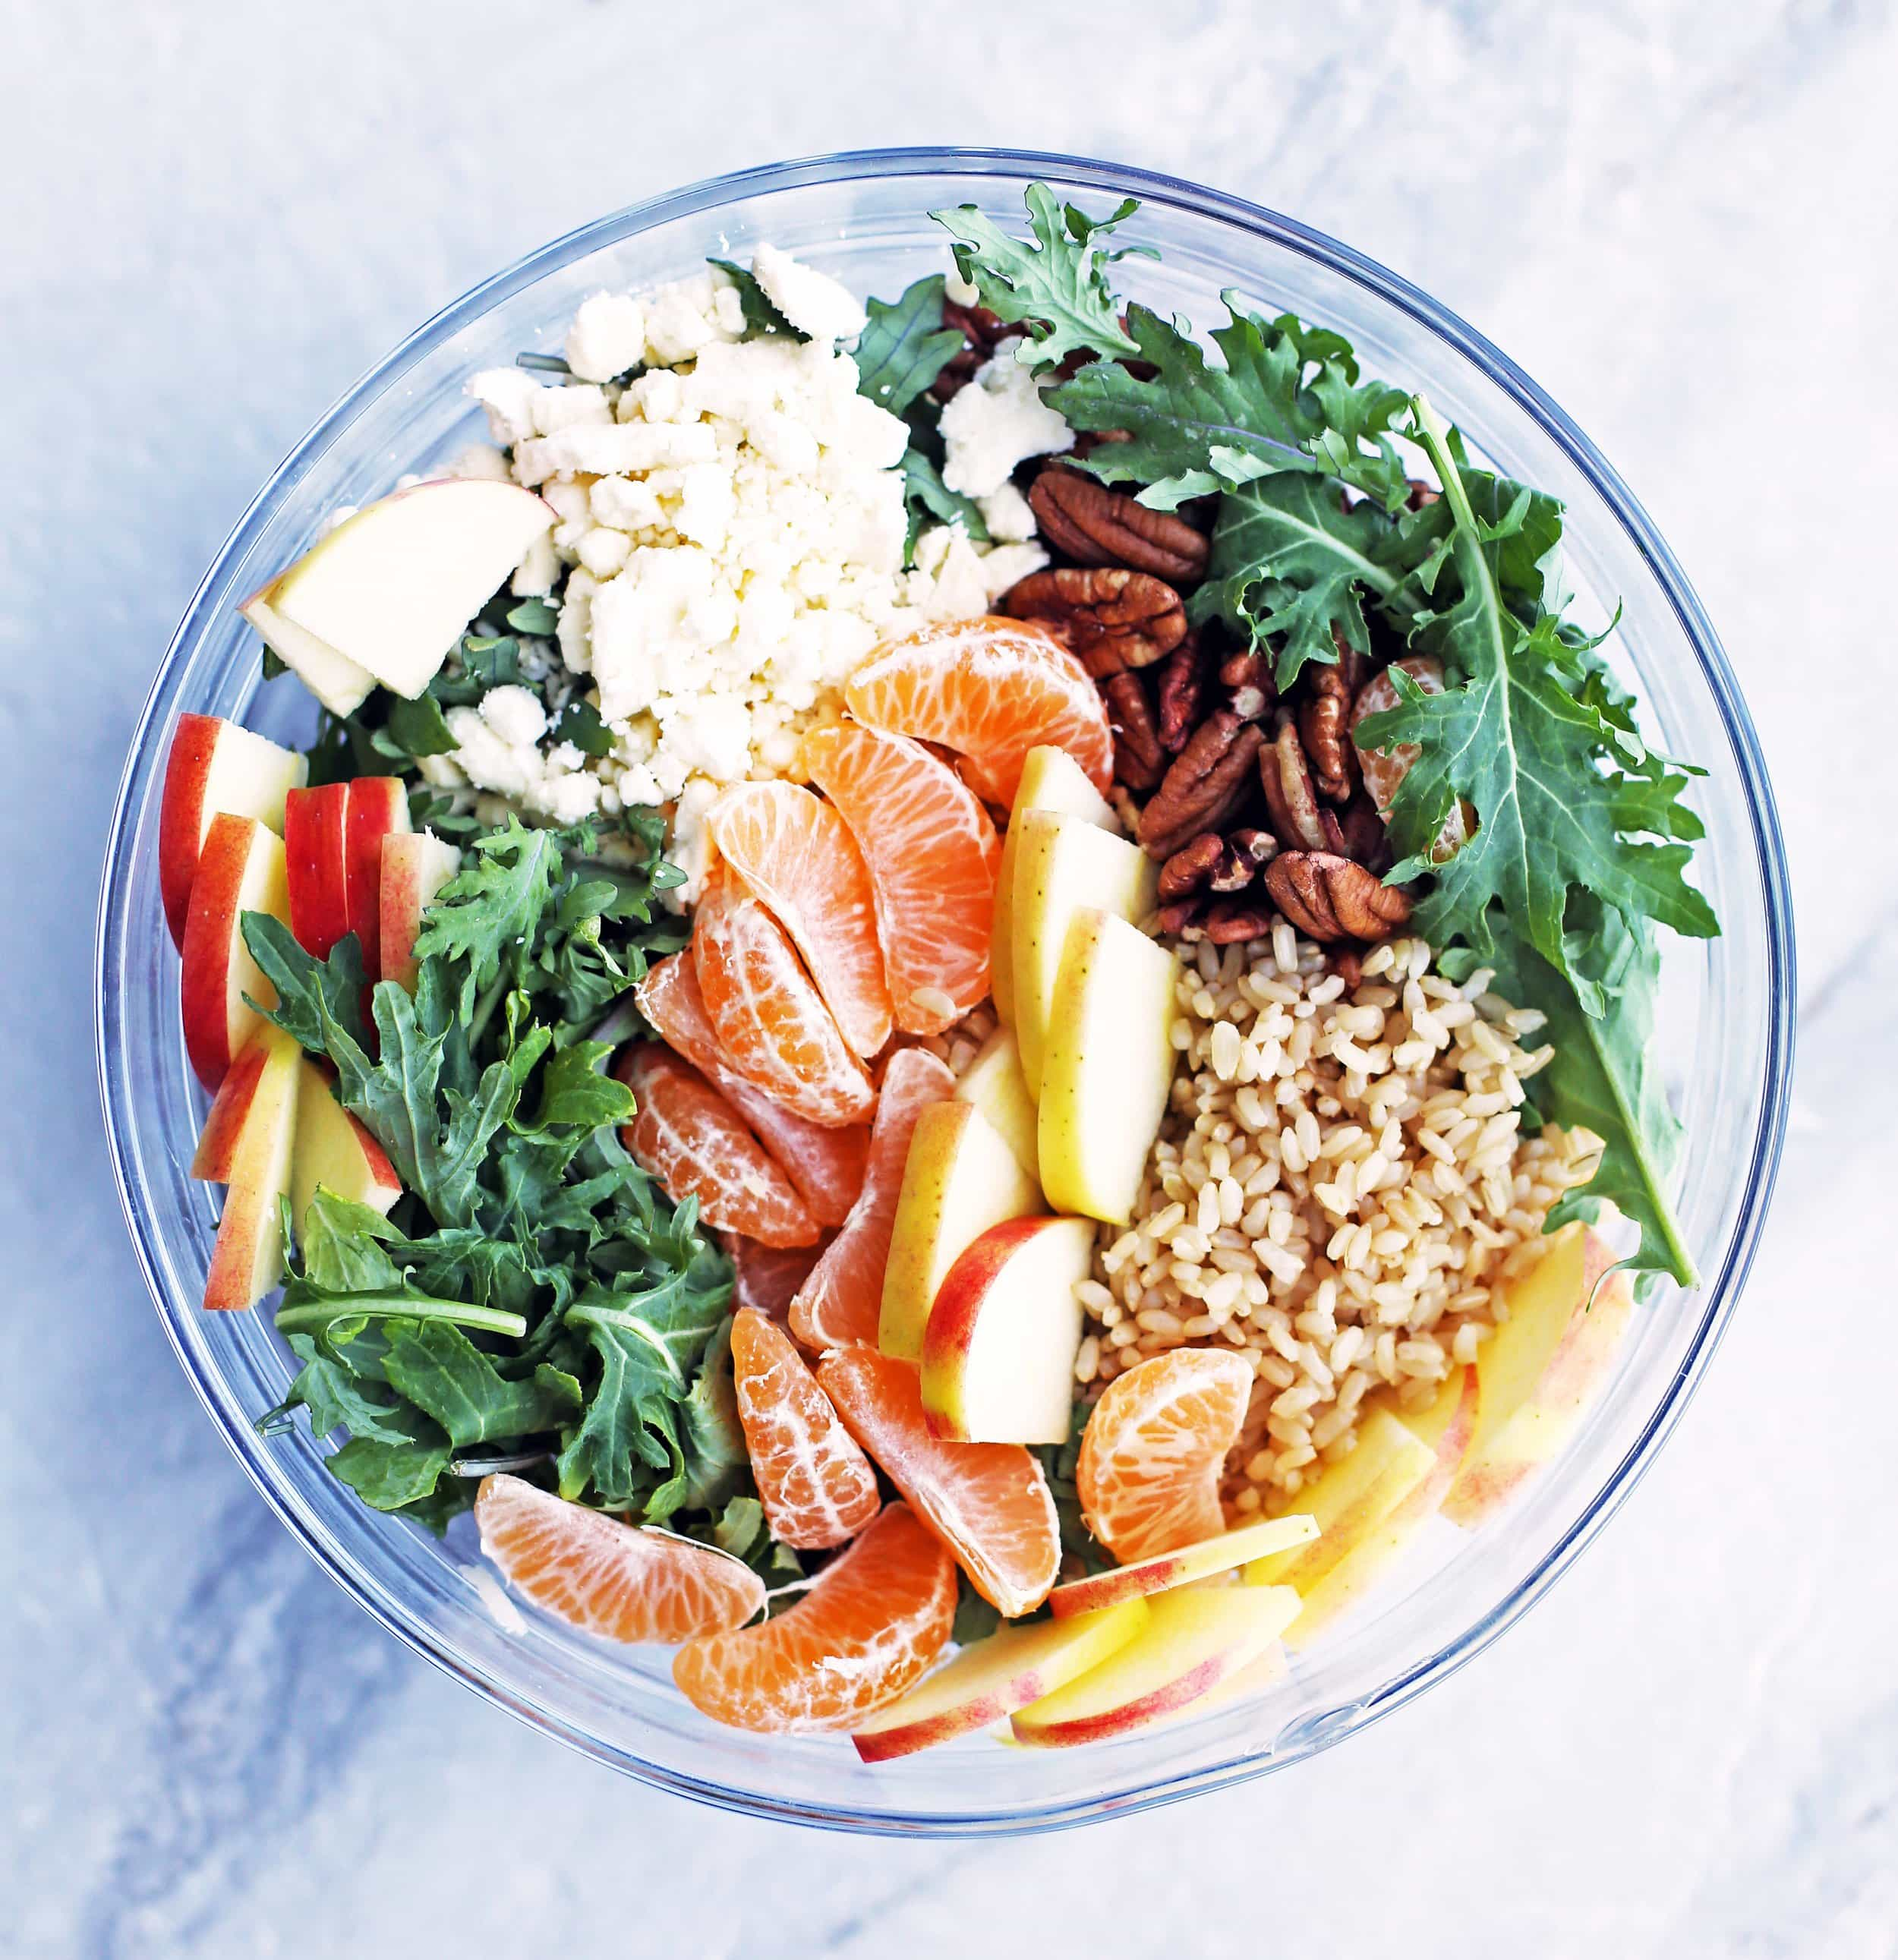 Brown rice, clementine sections, sliced apples, baby kale, and feta cheese in a large glass bowl.